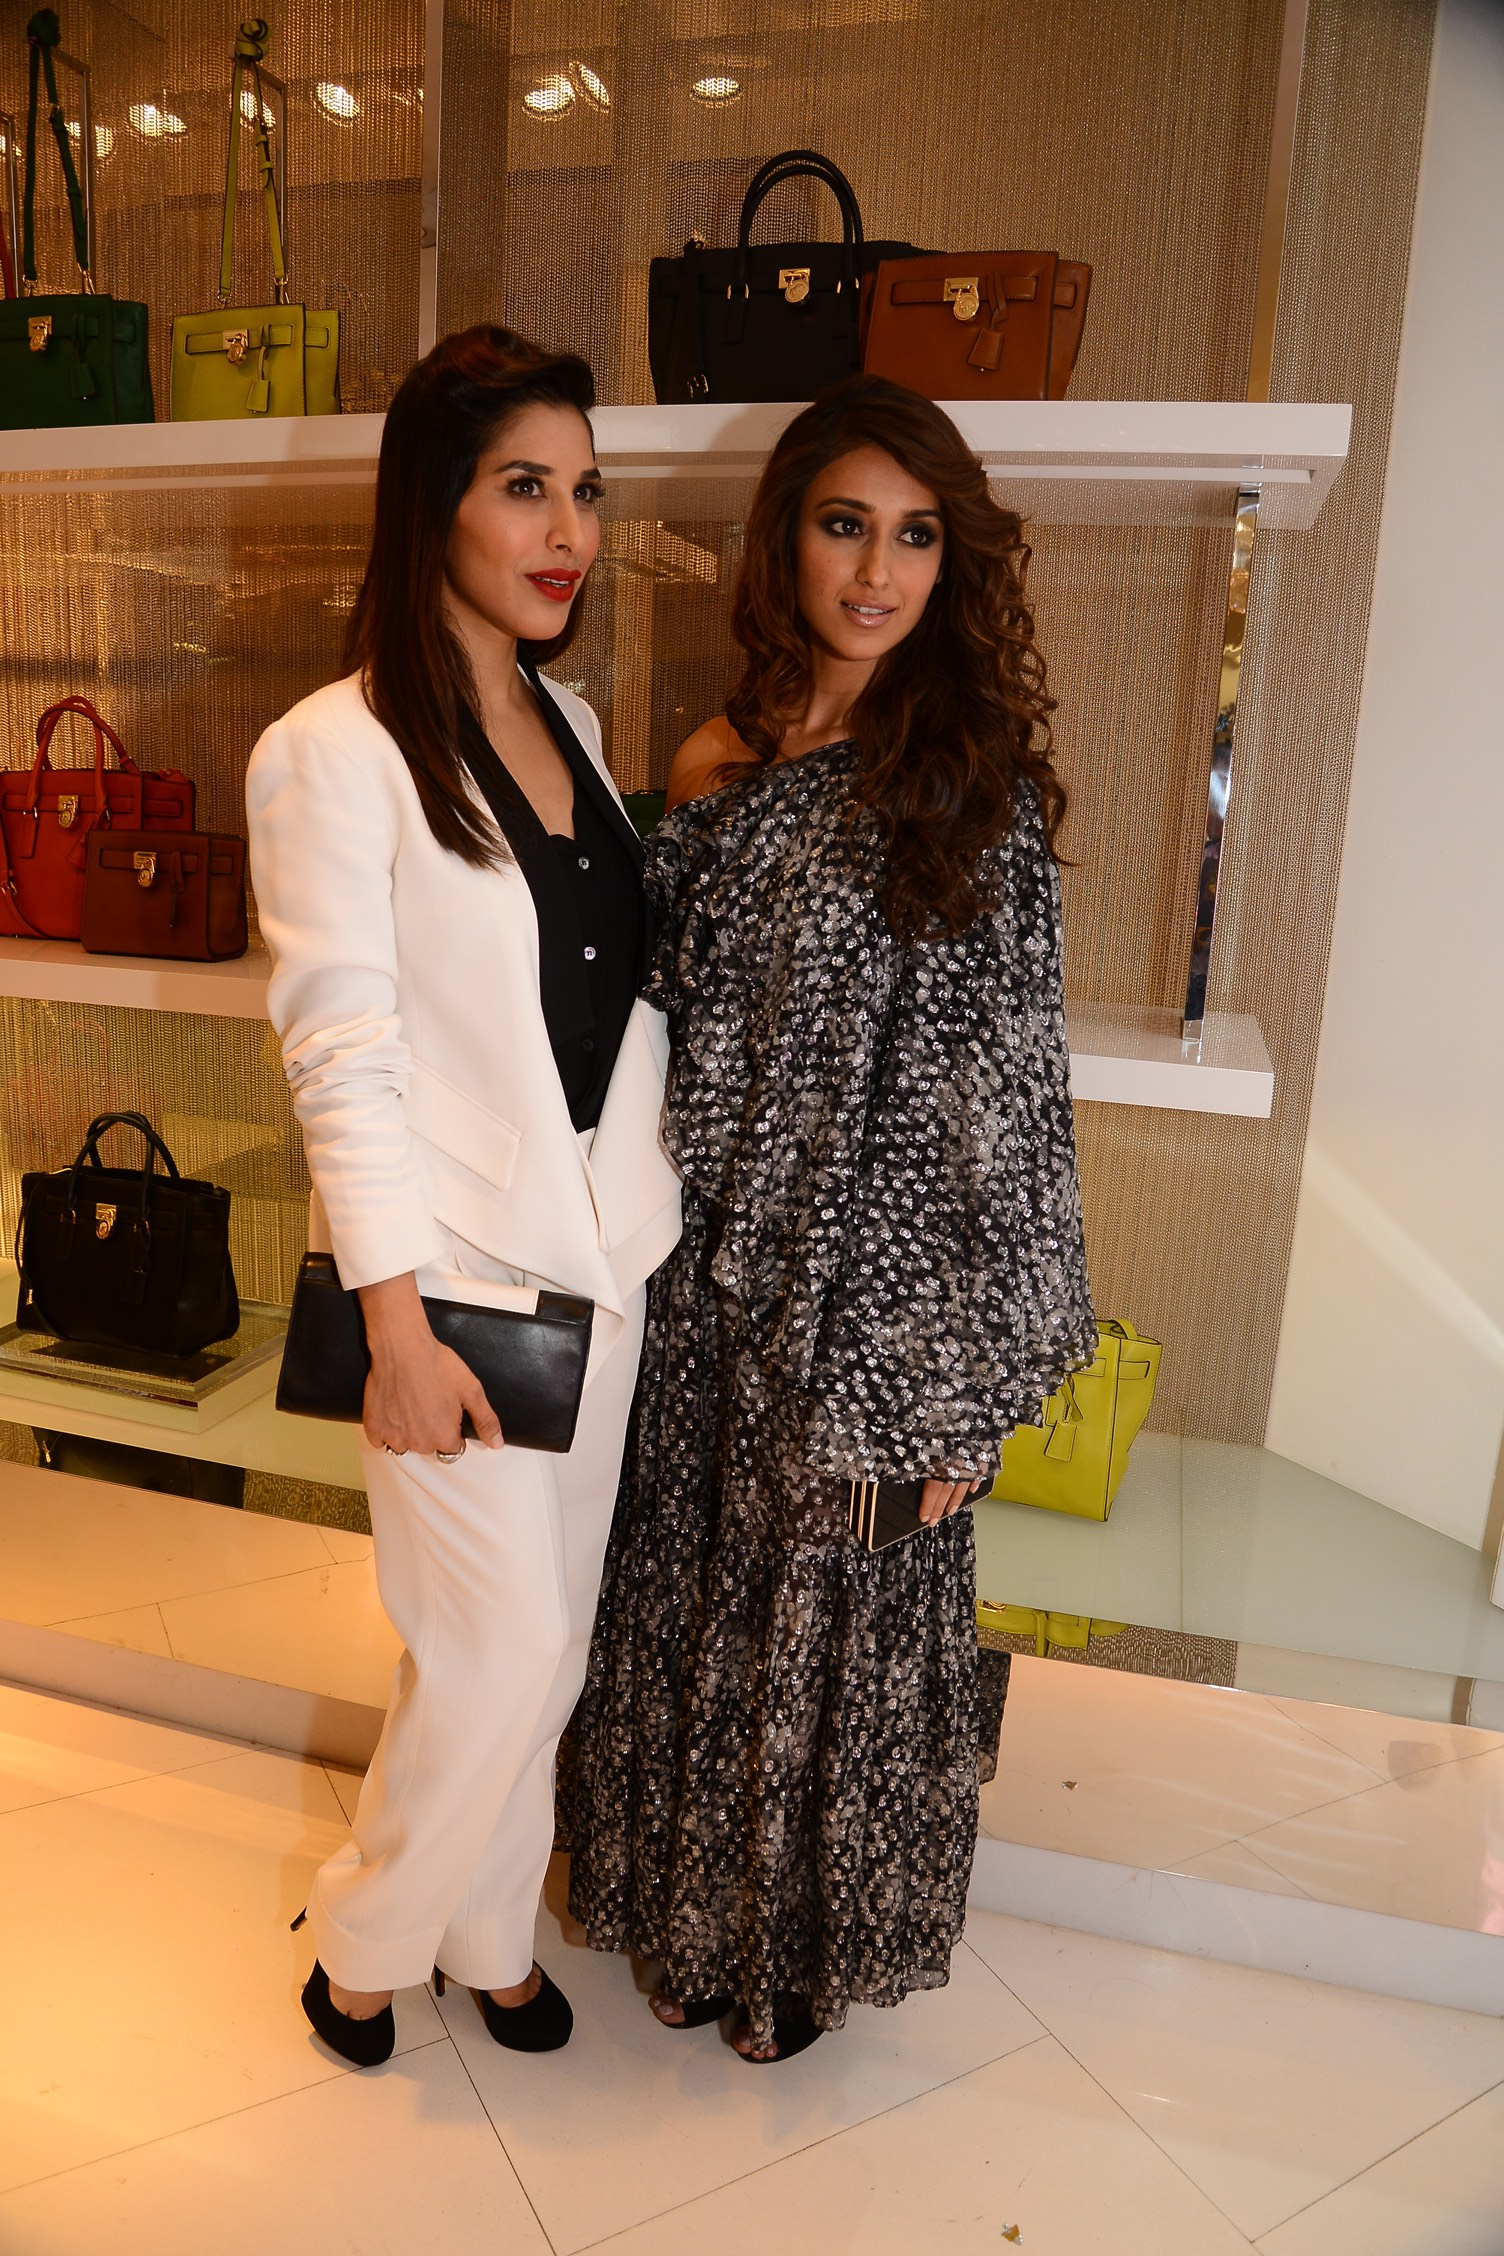 Sophie Choudry:    Optic white   Michael Kors jacket and pants with a black shirt all from the Transeason 2014 collection with a black and white leather Callie MICHAEL Michael Kors clutch from the Holiday 2015 collection.